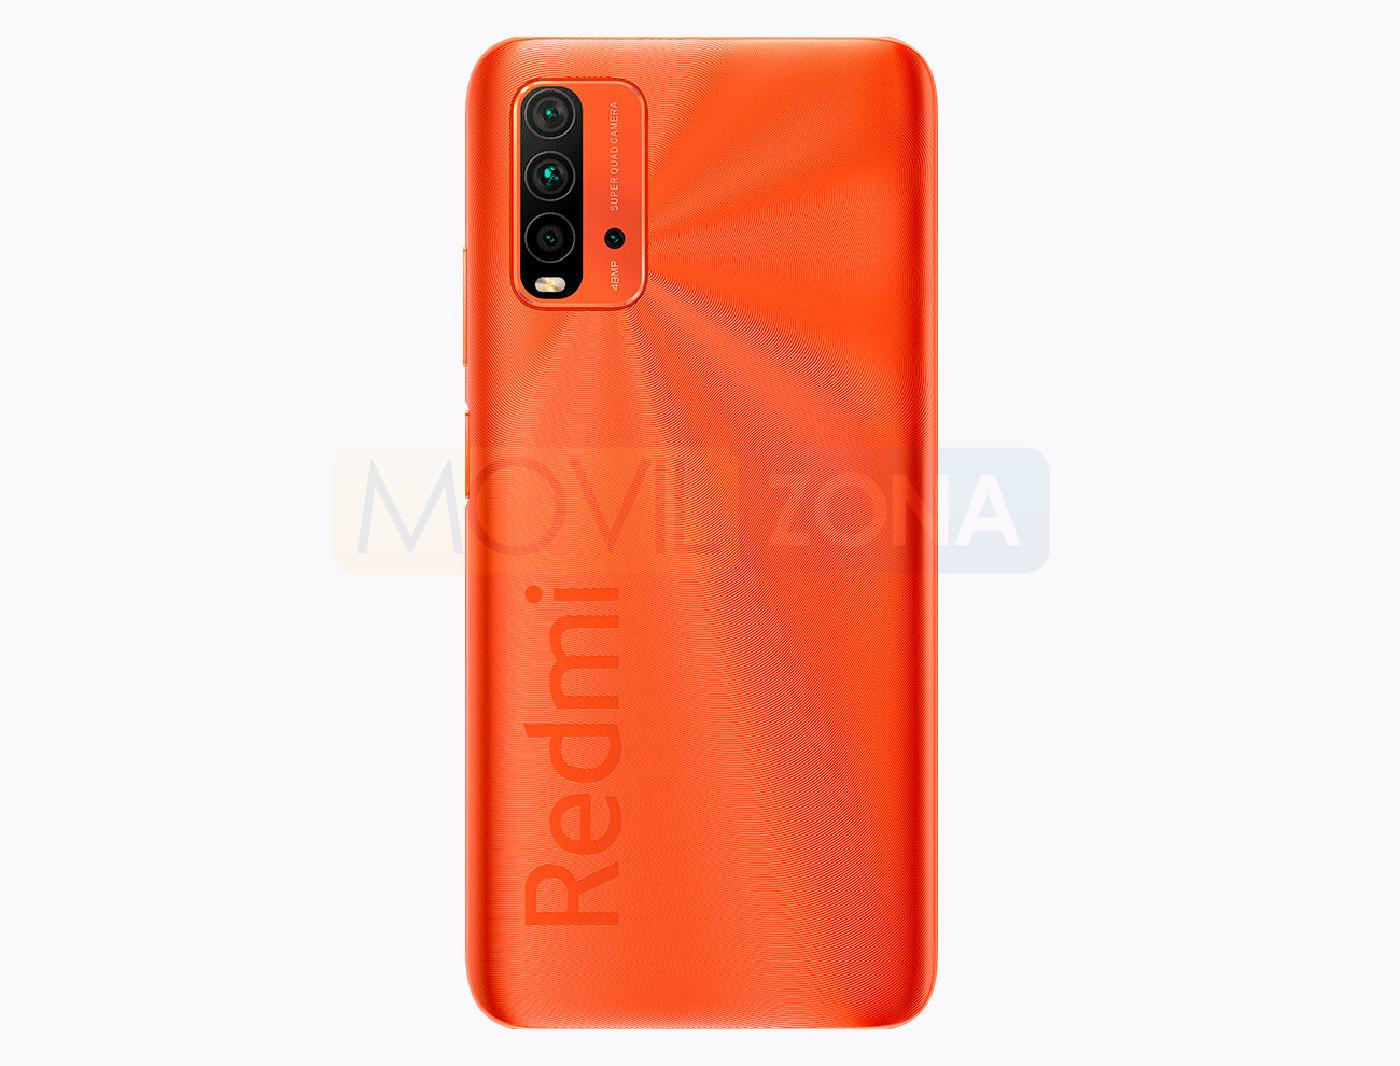 redmi 9 Power naranja